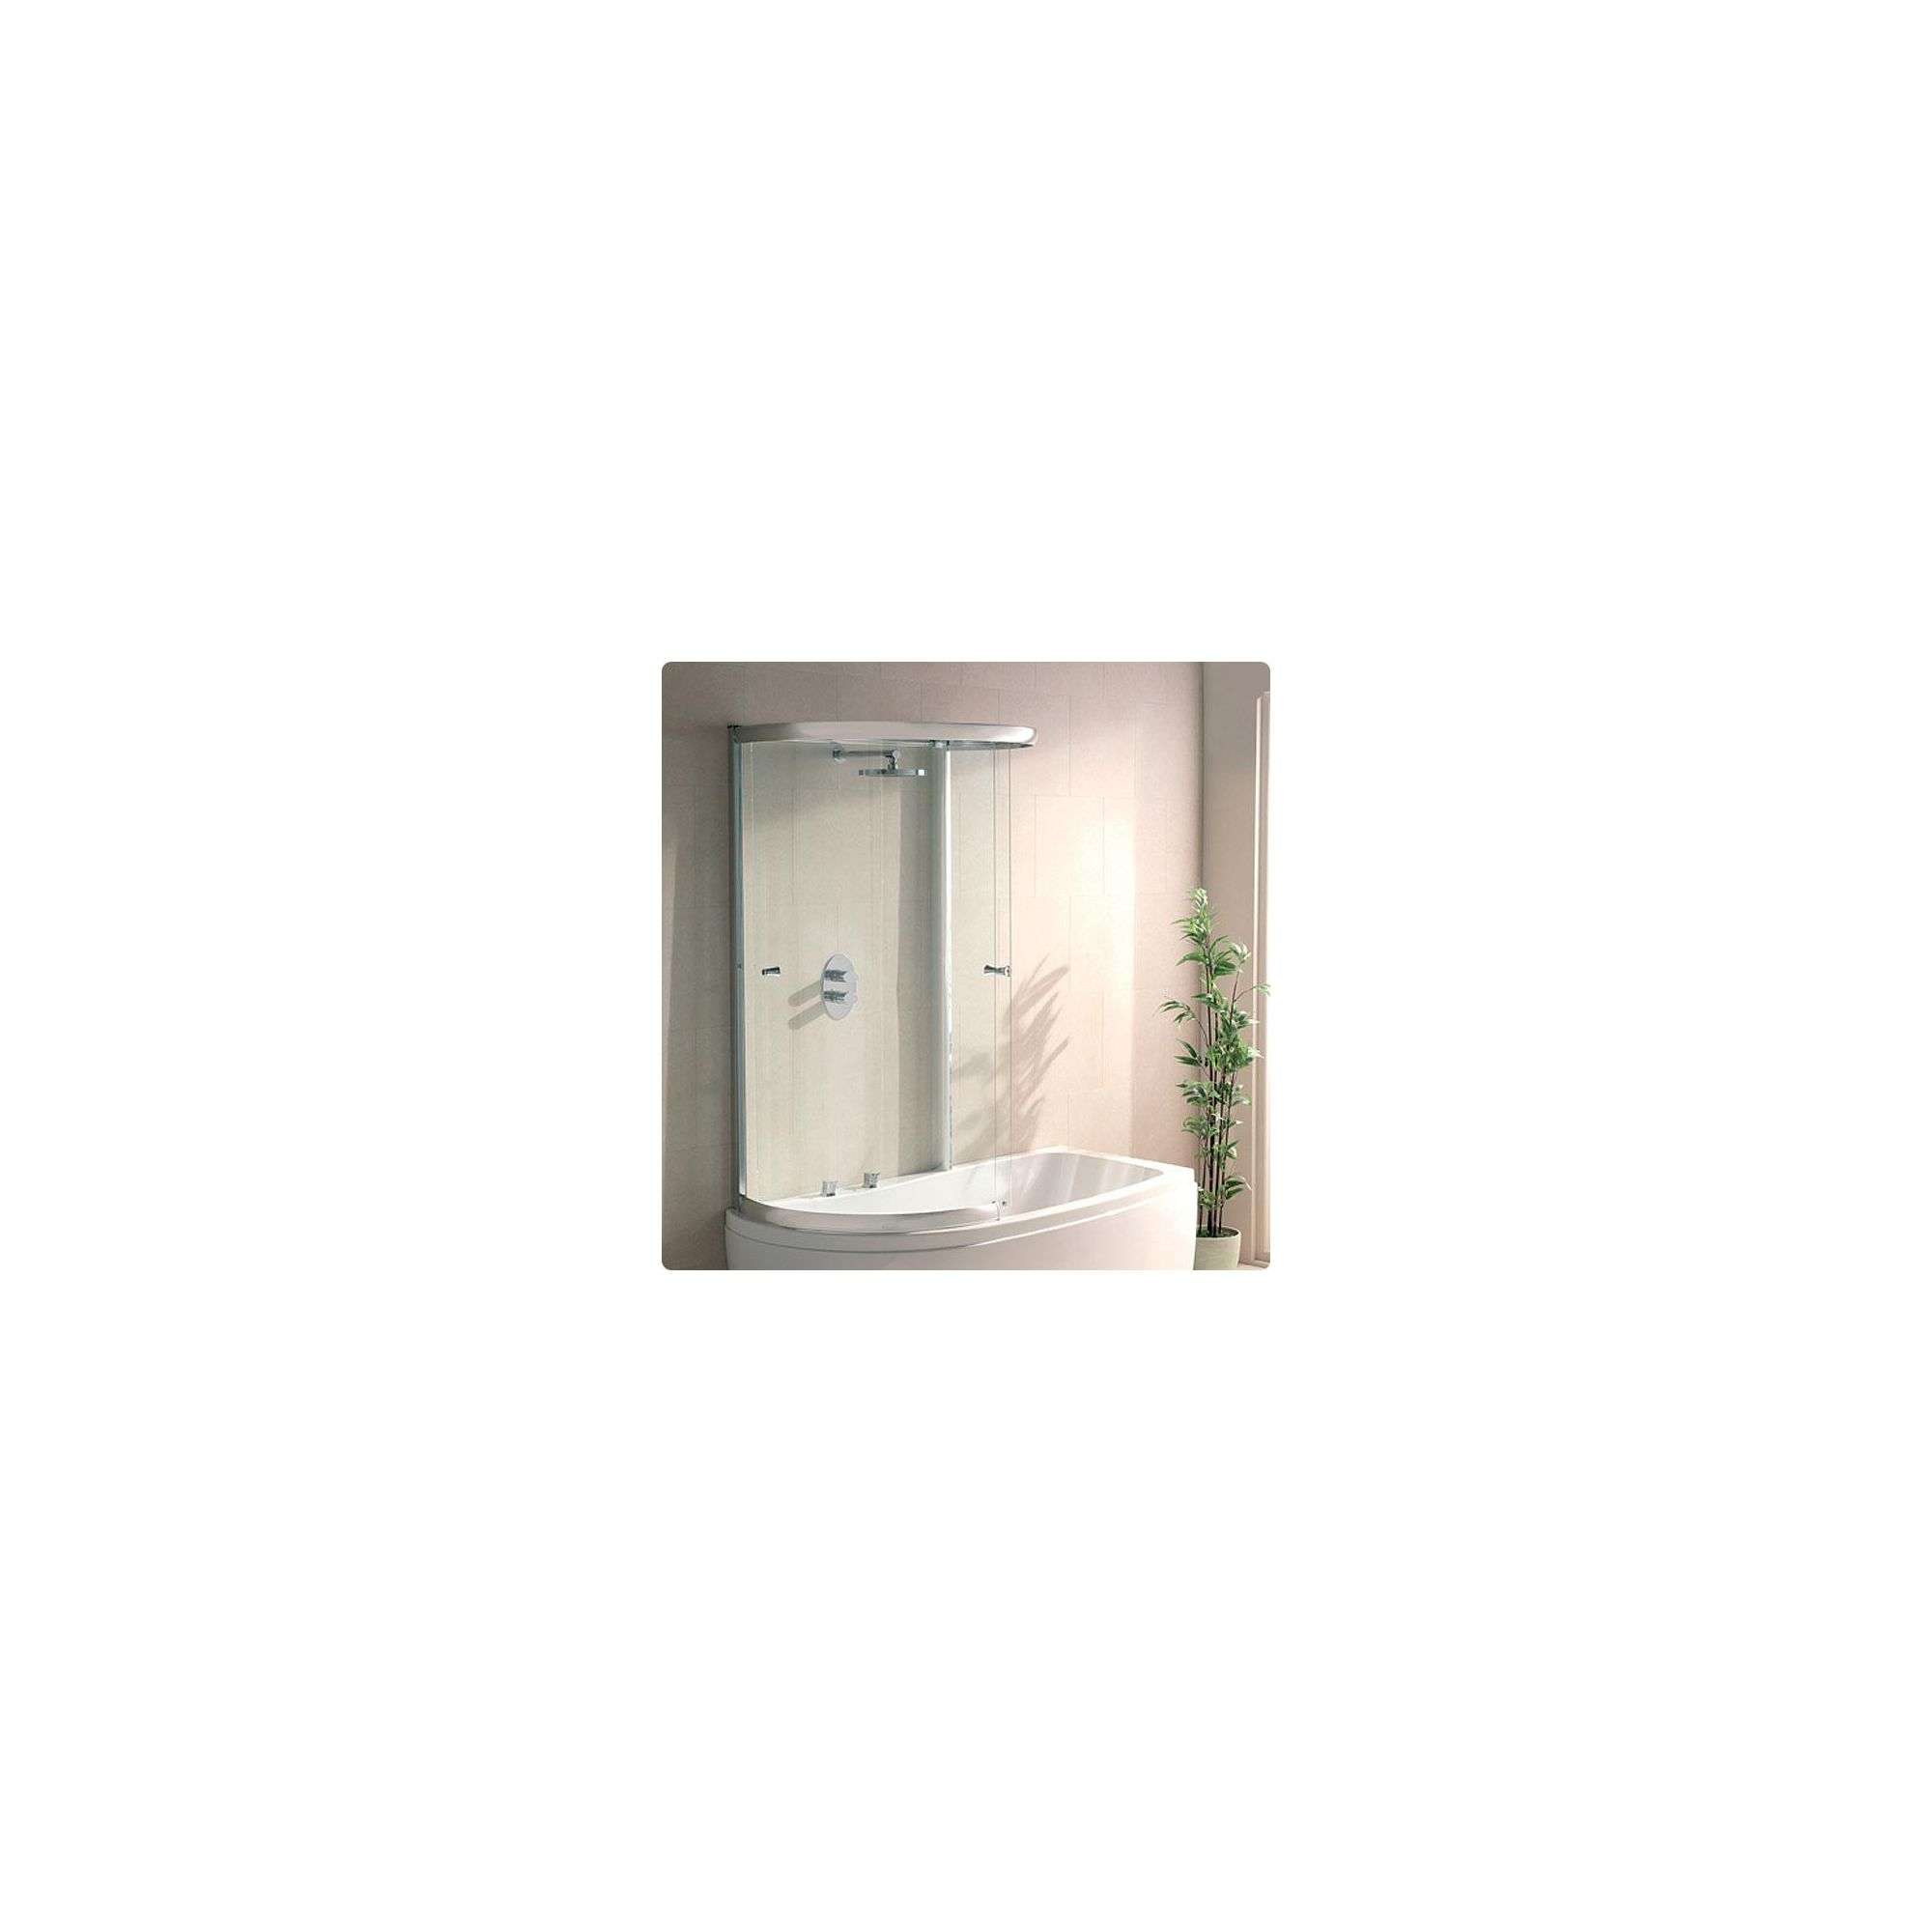 Duchy SOPHIA Curved Showerbath Bath Panel with Extending Sliding Door inside Enclosure Style Frame LEFT HANDED with Silver Profile at Tesco Direct